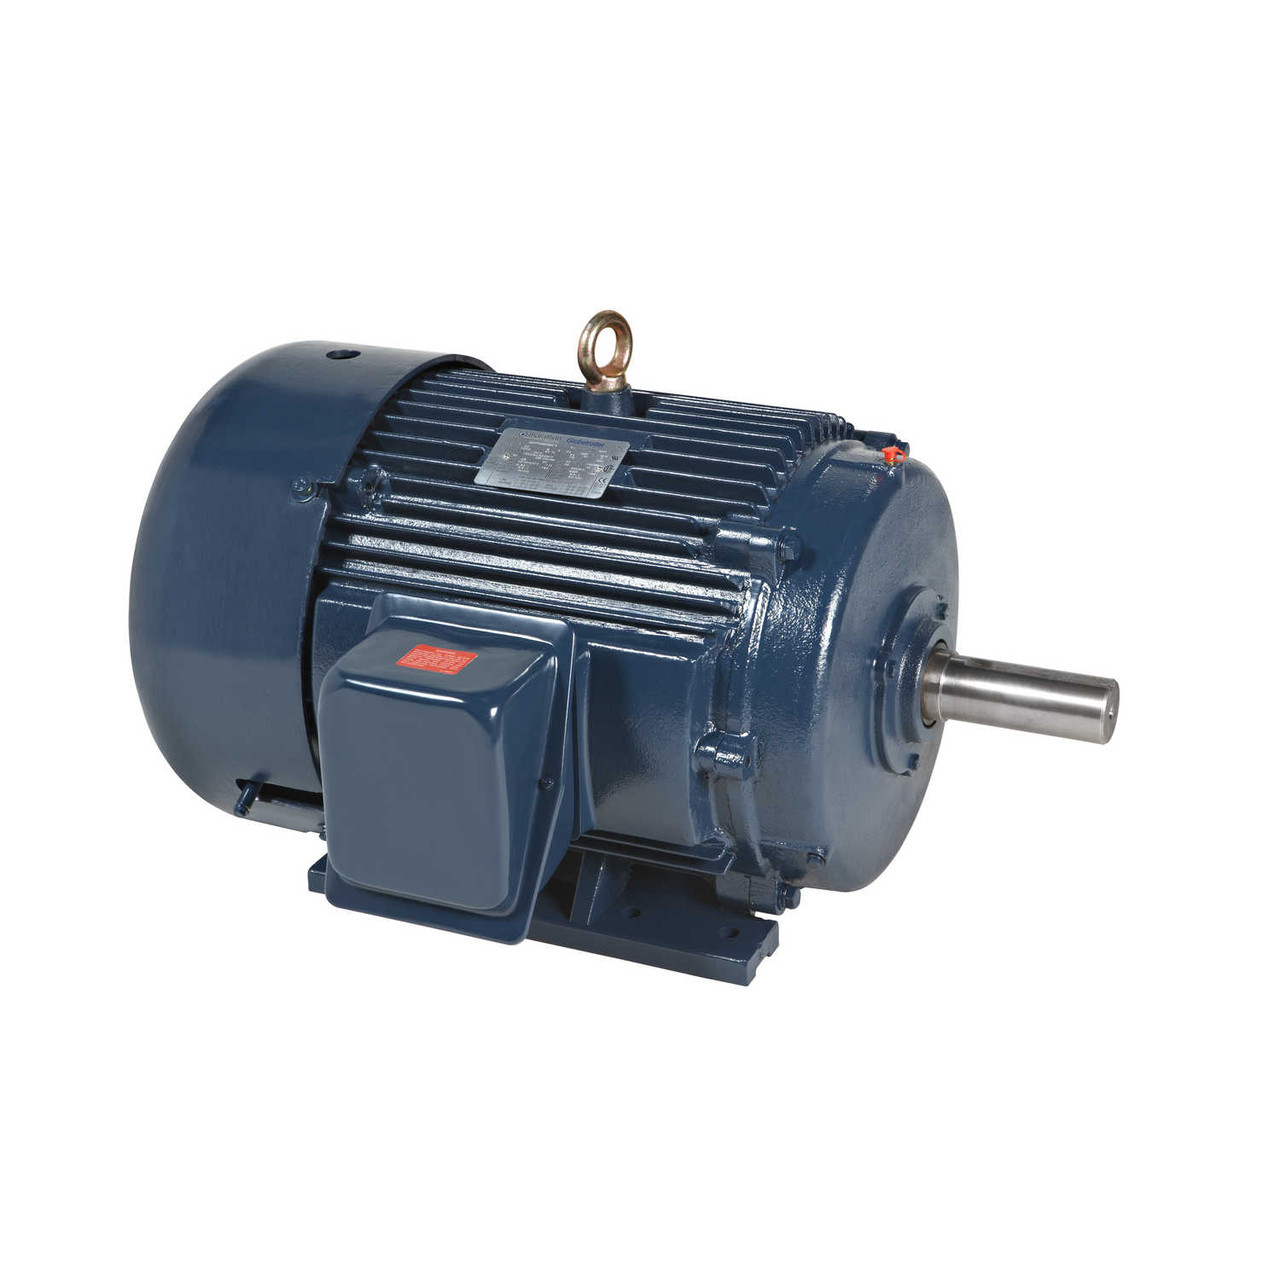 GT1134A Globetrotter Three Phase Totally Enclosed Rigid Base Motor 40 HP